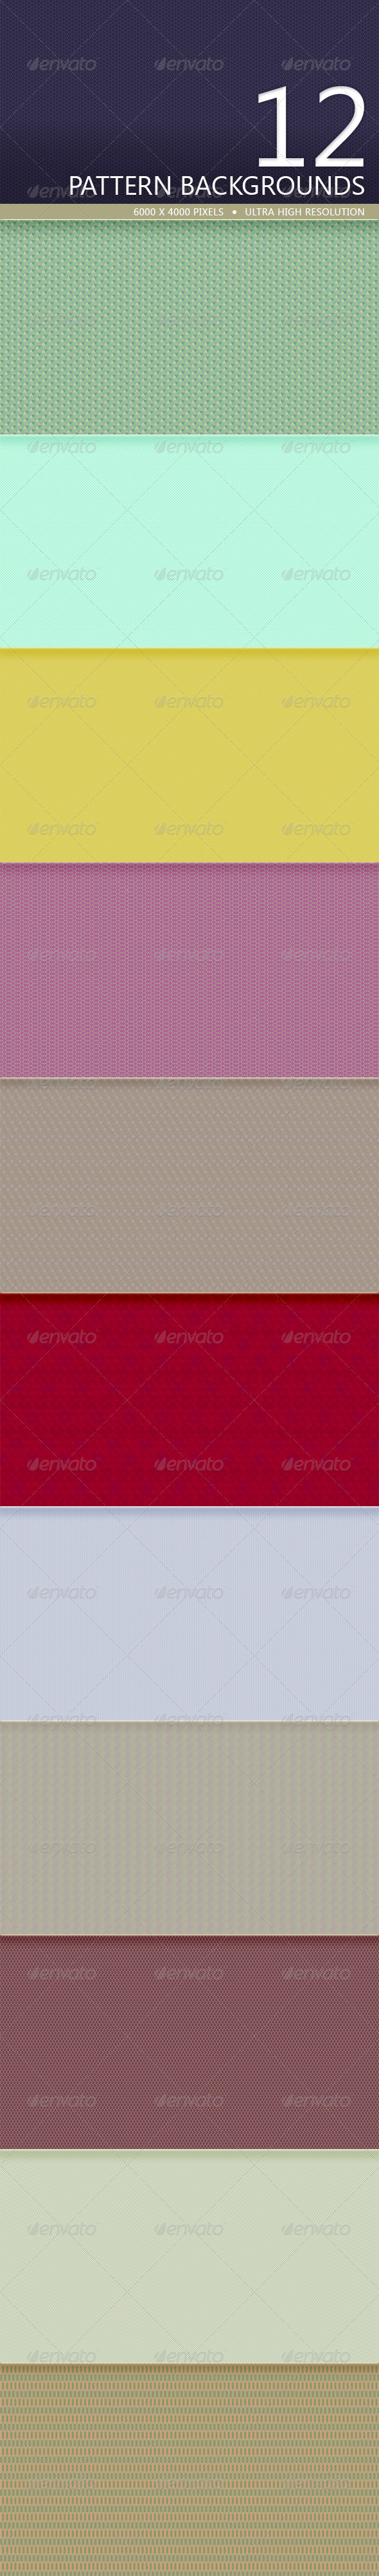 GraphicRiver Pattern Backgrounds Volume 2 5220948